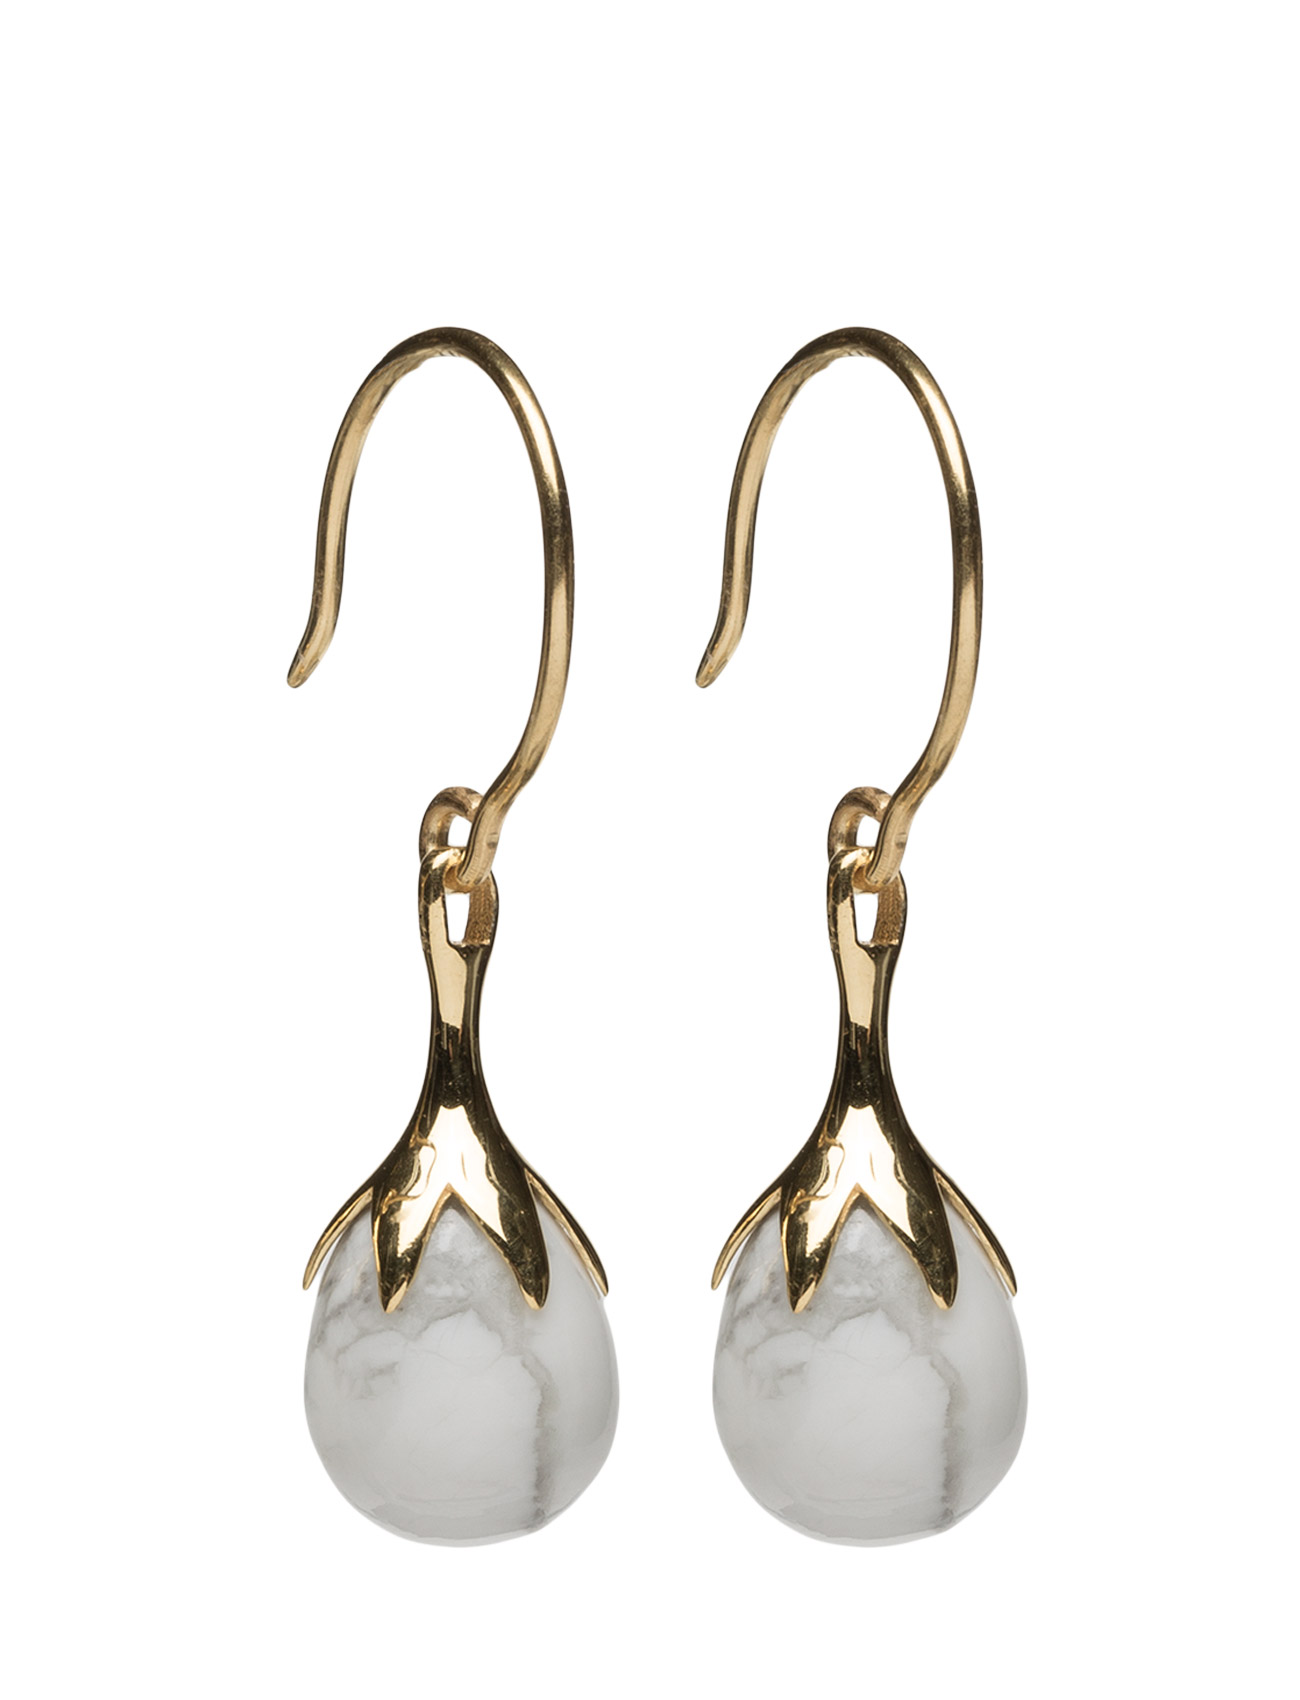 Dripping Earrings Gold Howalite thumbnail